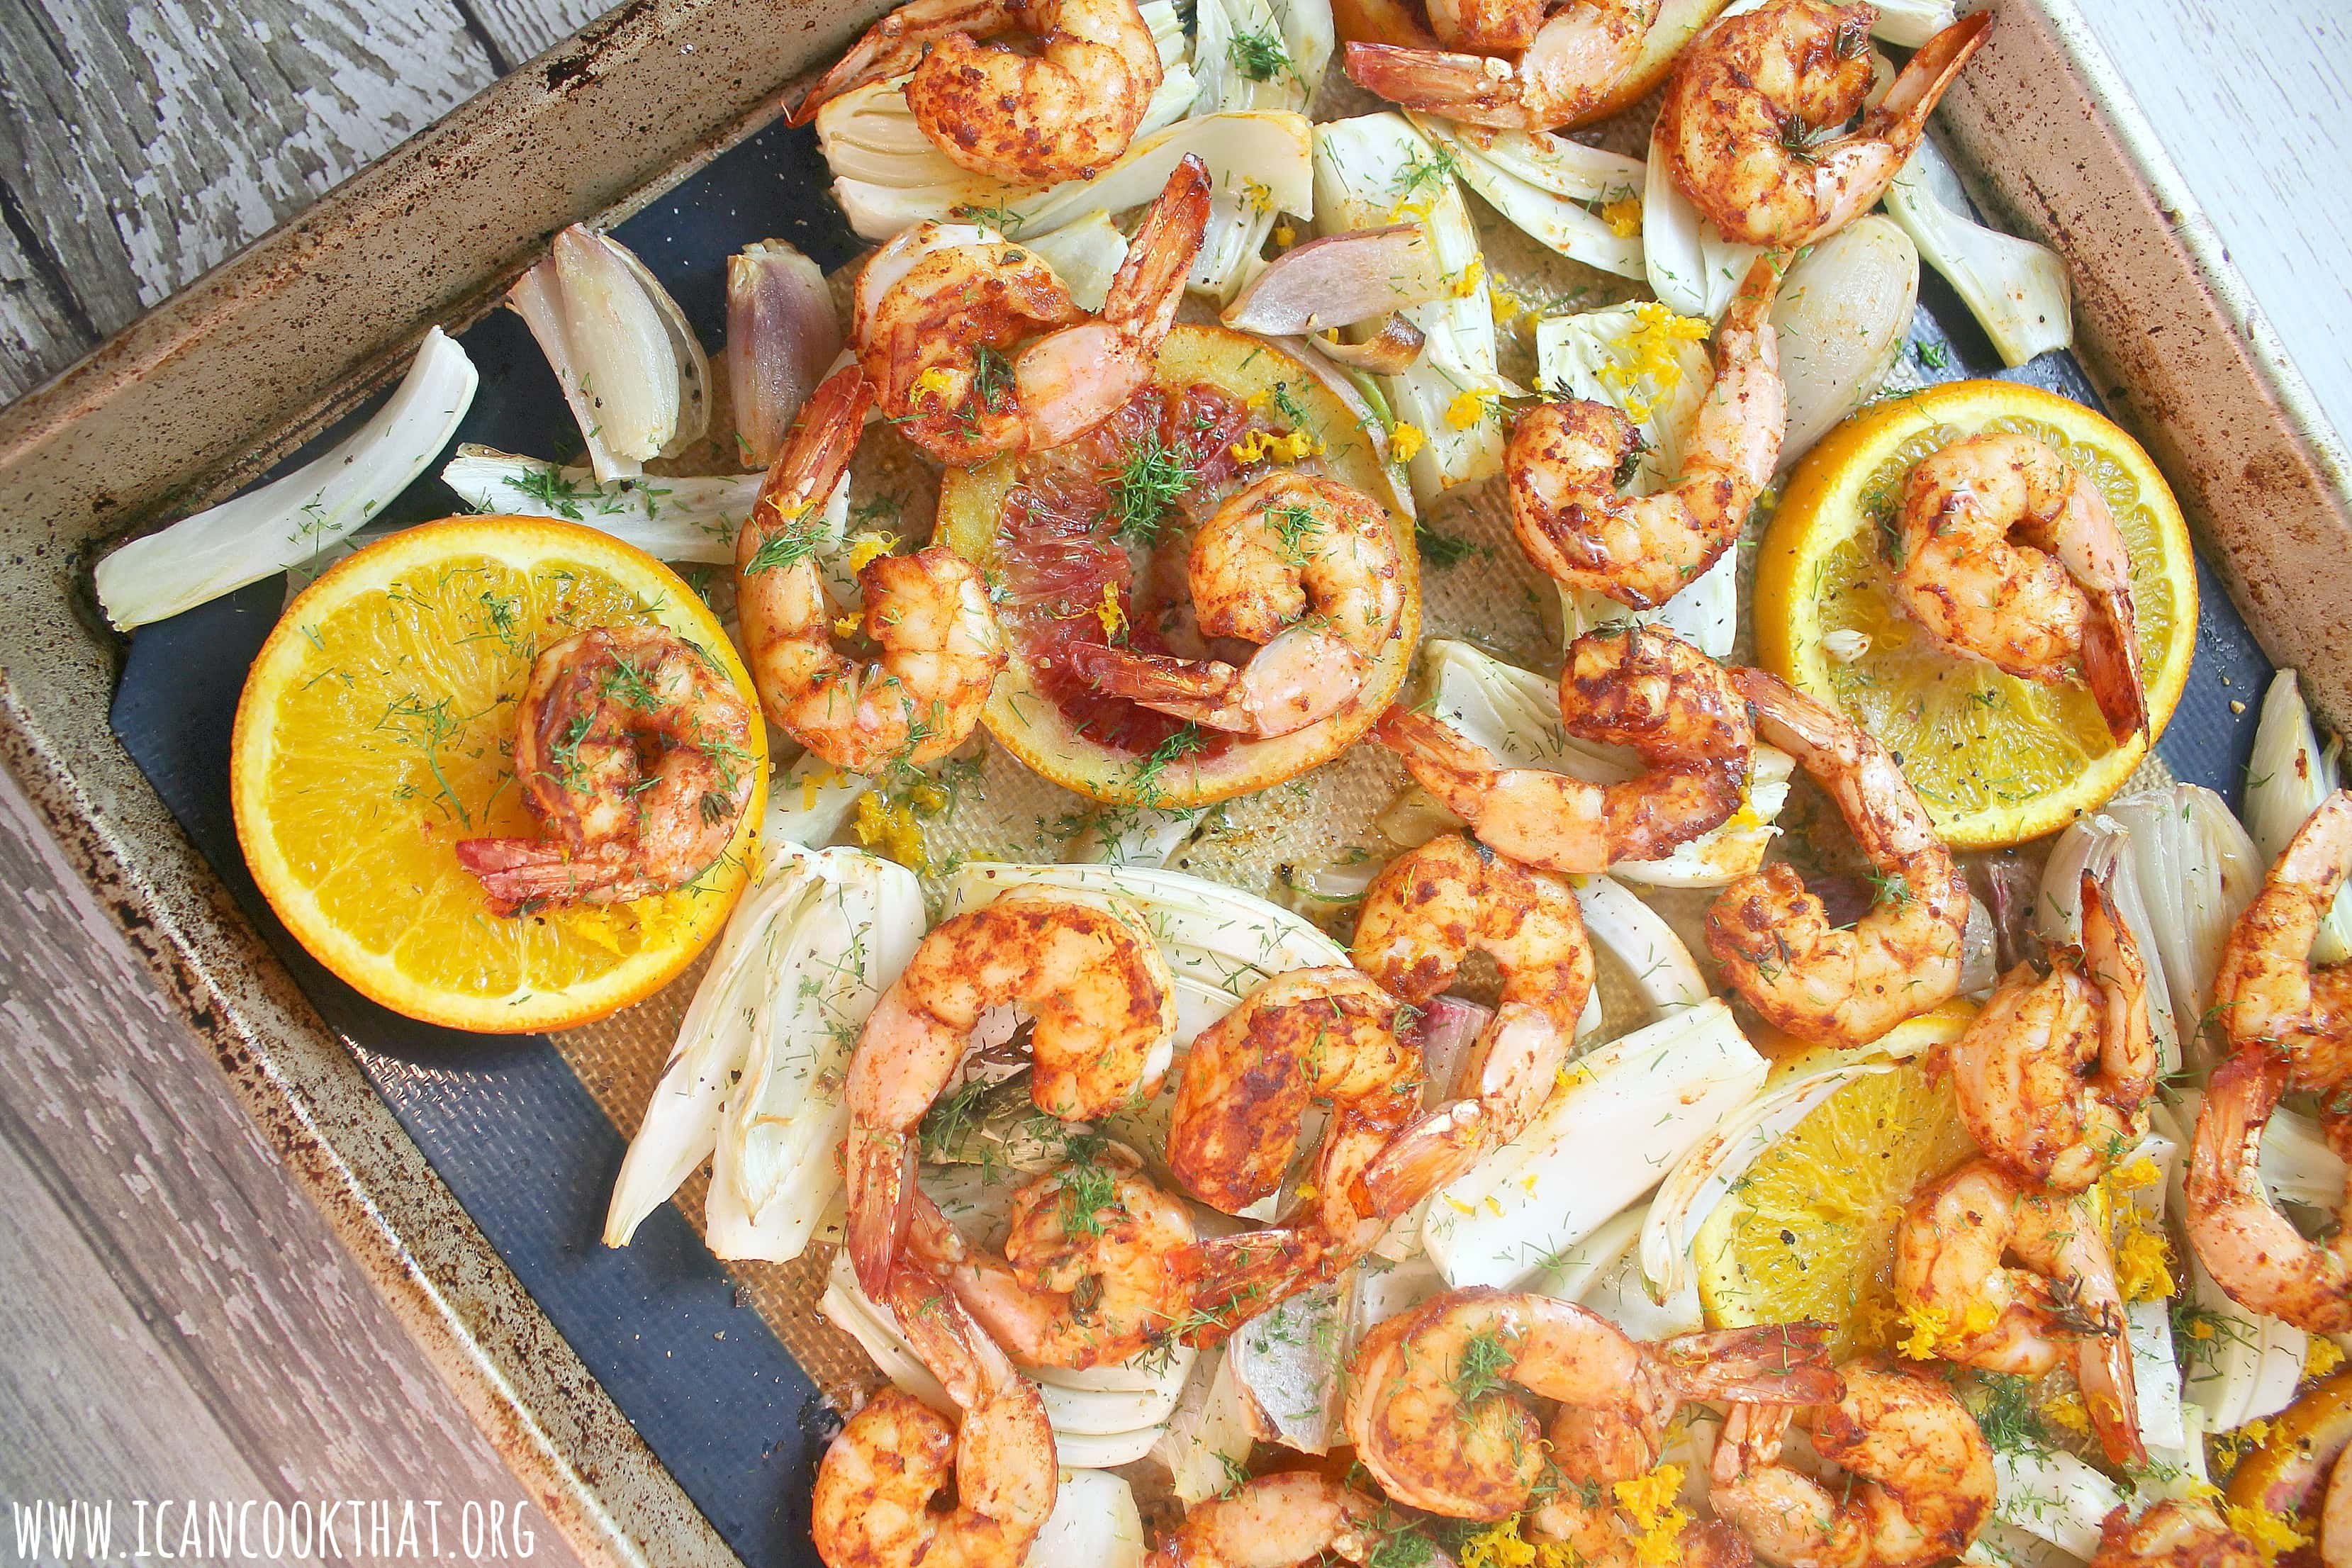 Sheet Pan Blackened Shrimp with Citrus and Roasted Fennel